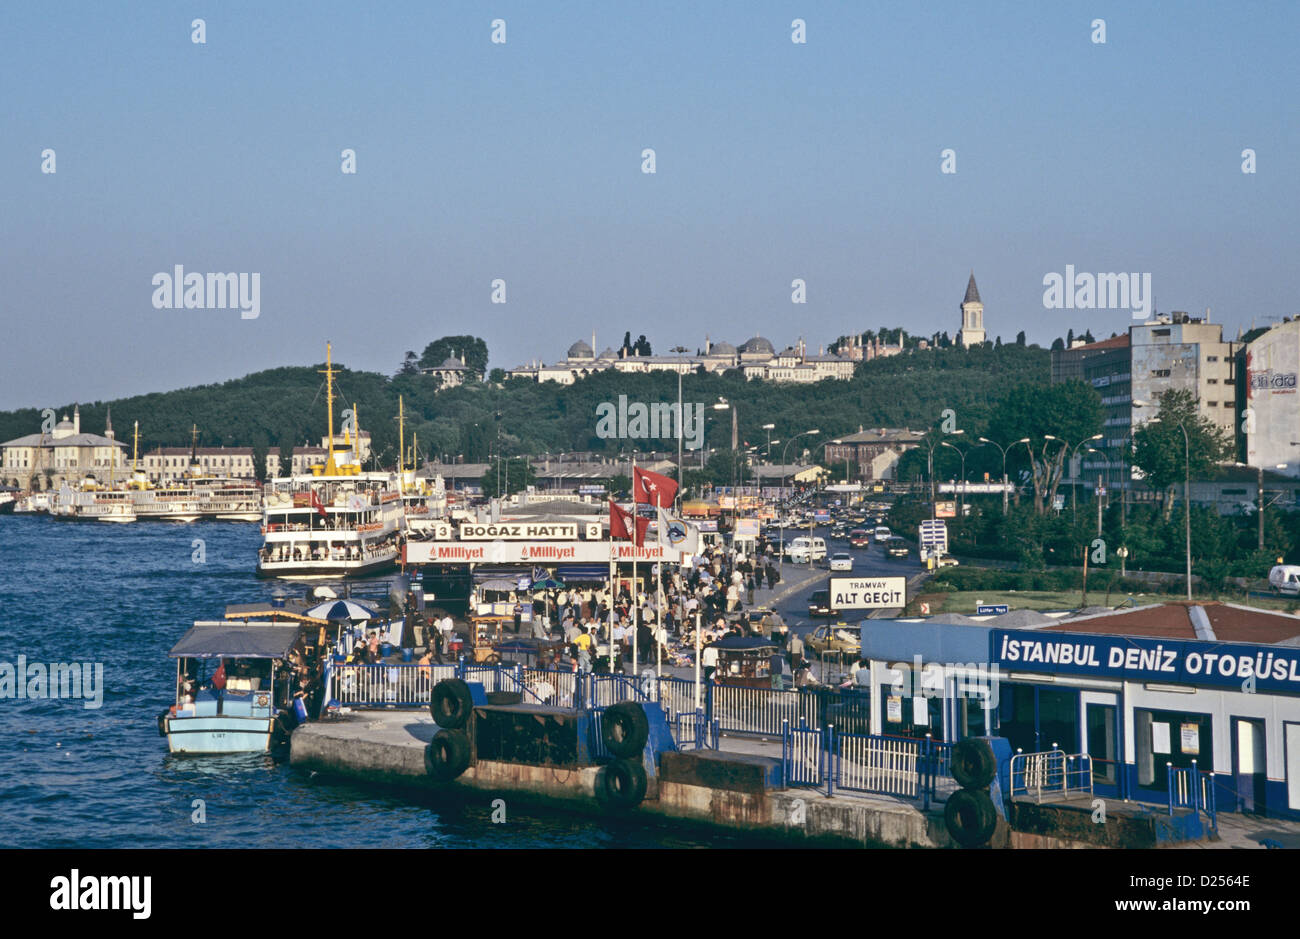 Waterfront of the Golden Horn from the Galata Bridge, Topkapi in the background, Istanbul, Turkey 000531_2429 - Stock Image